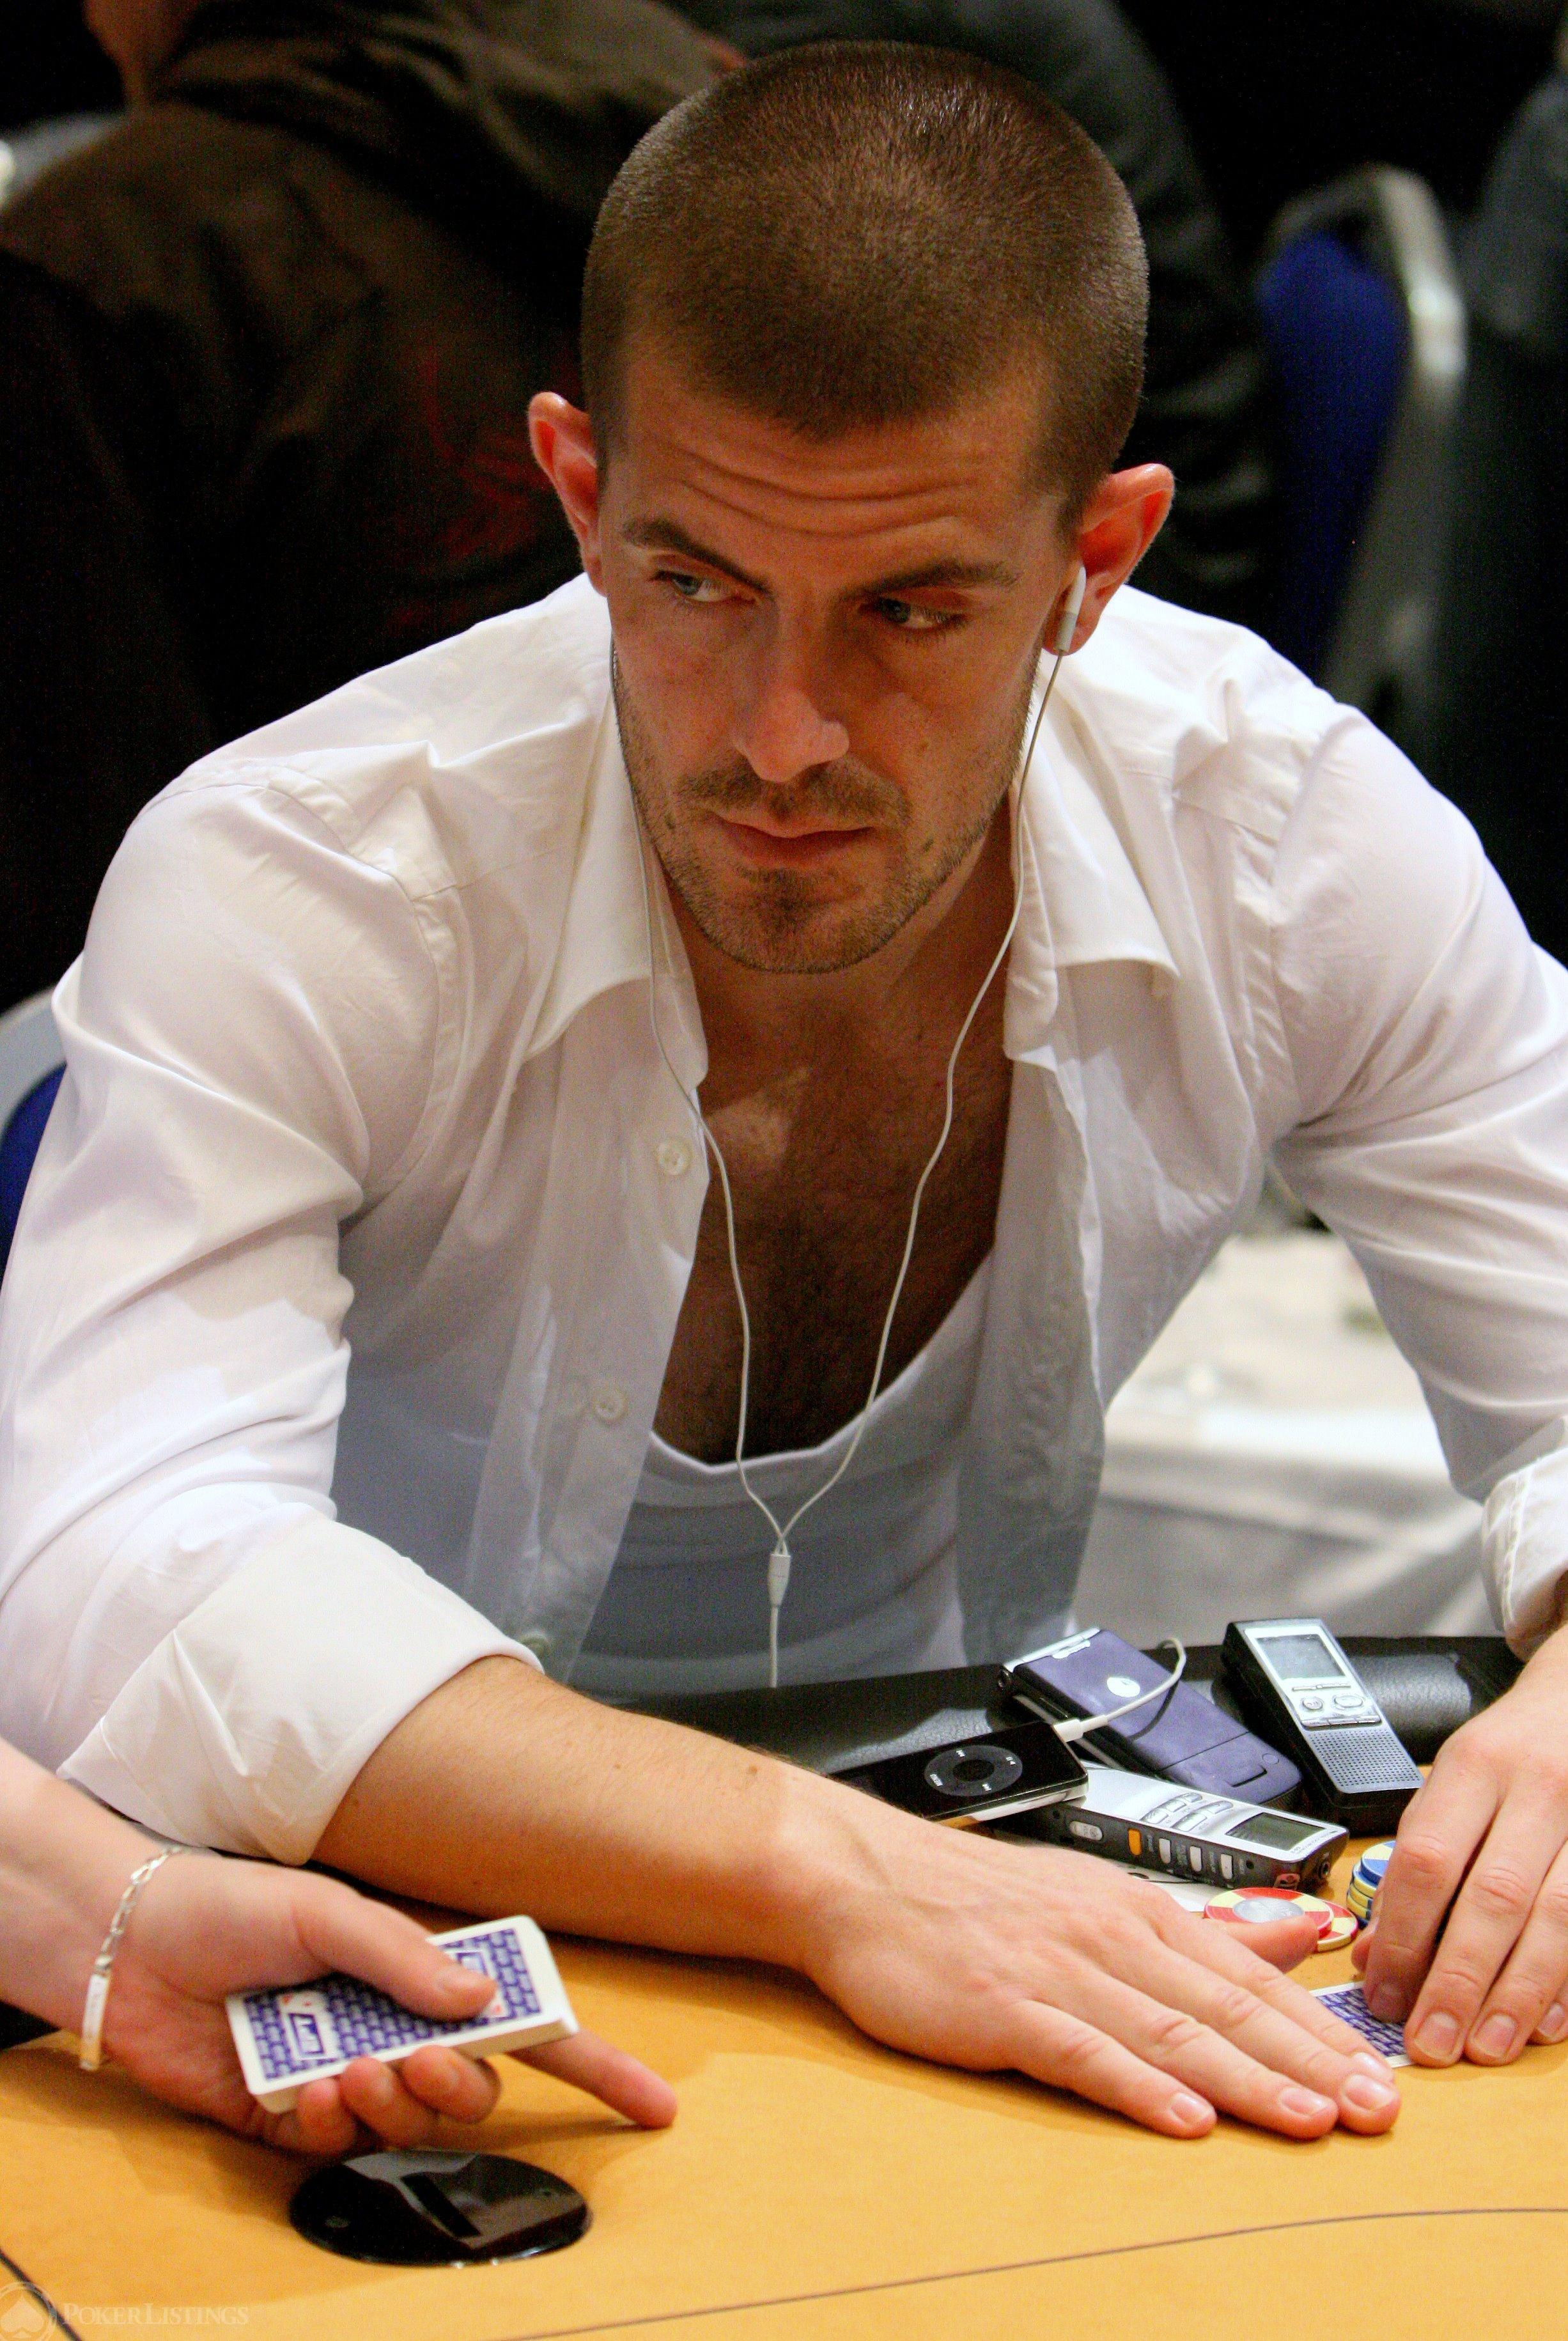 Gus Hansen - Gus Hansen - Poker Player - PokerListings.com